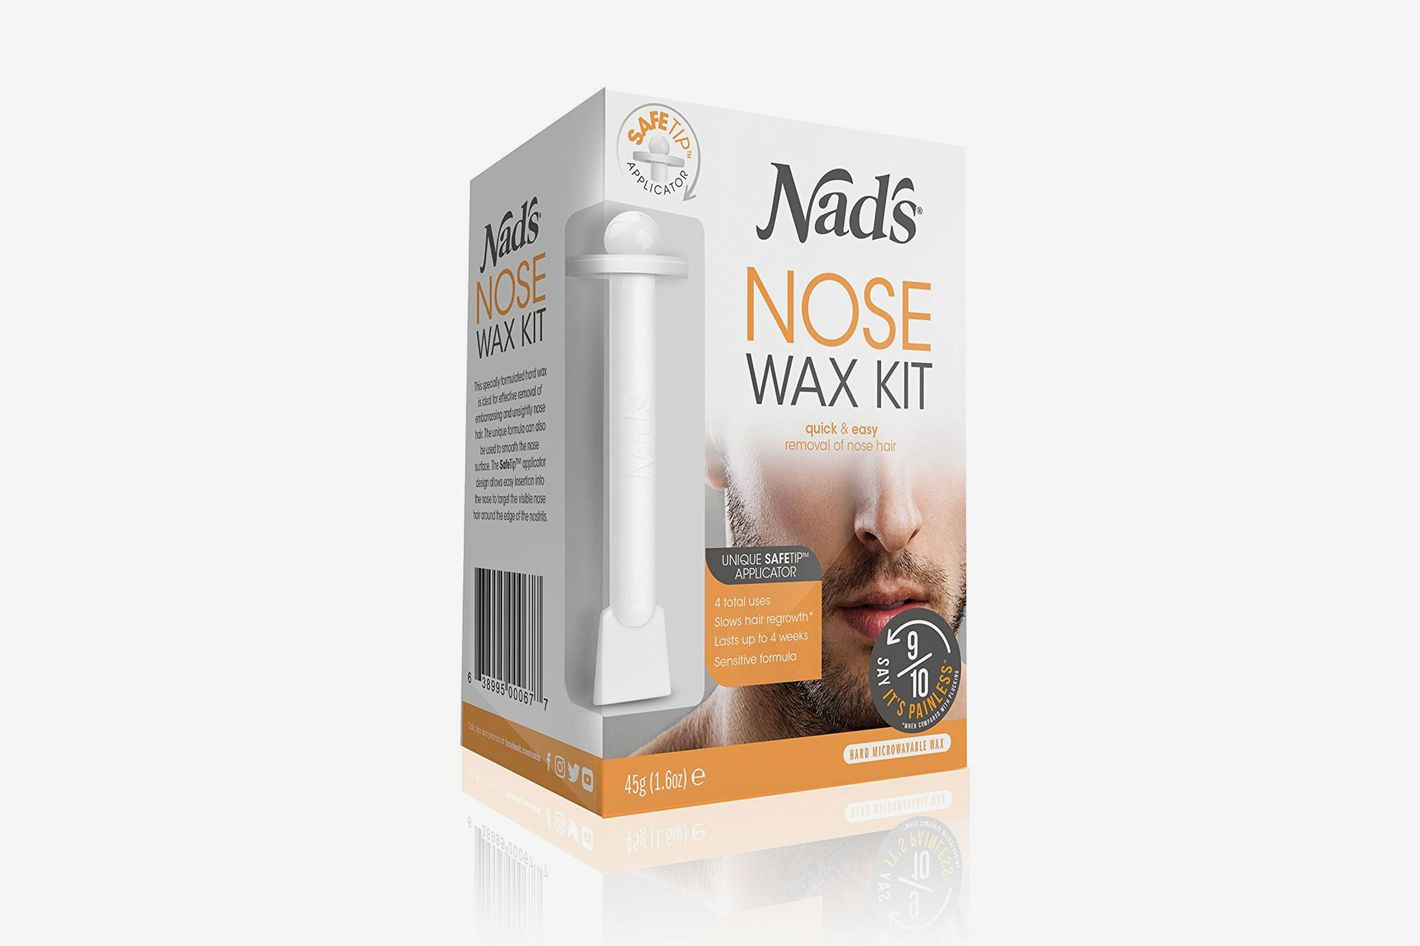 NAD's Nose Wax for Men & Women